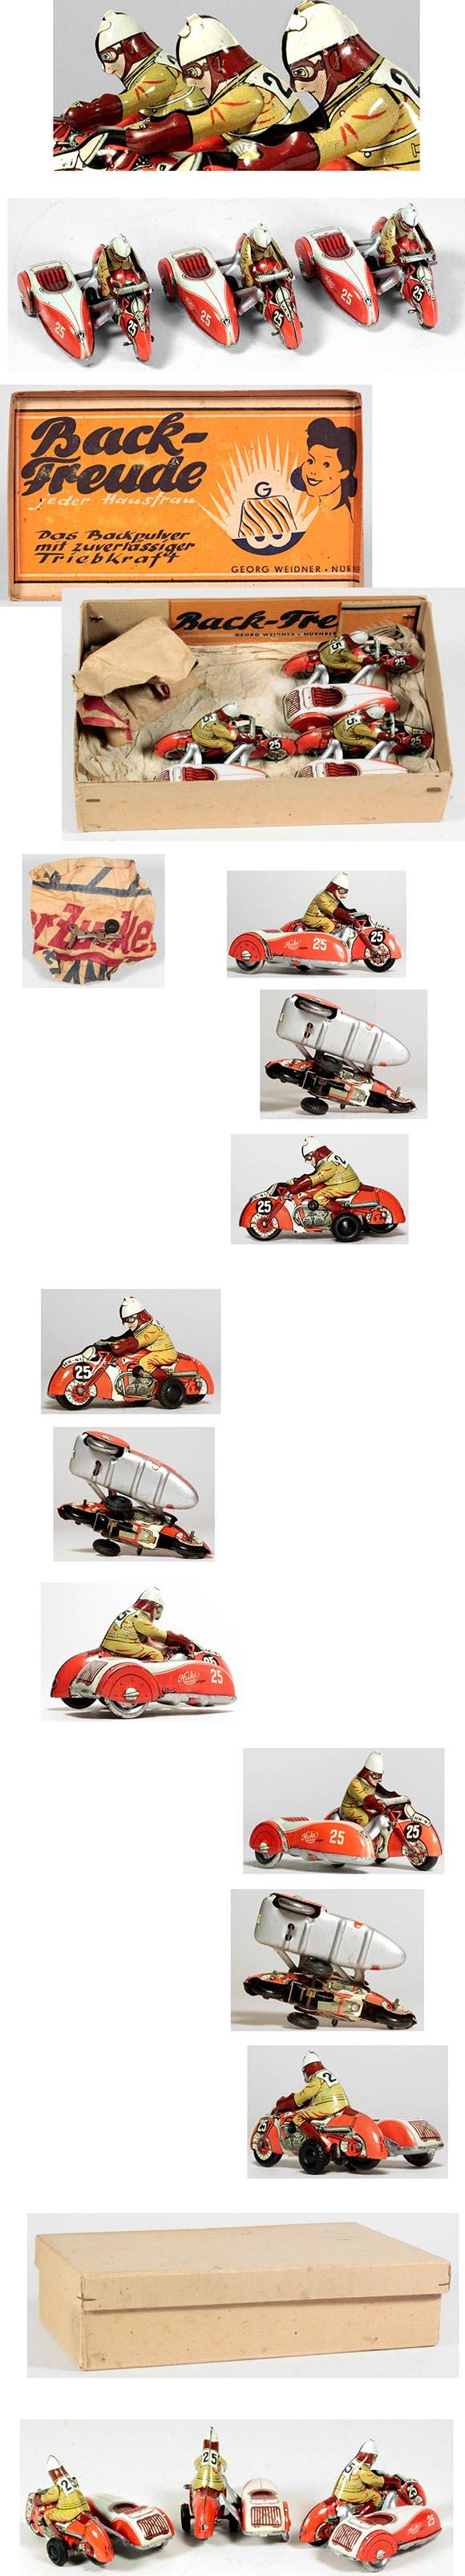 c.1946 Keinberger Huki, 3 Racing Motorcyles in Original Box